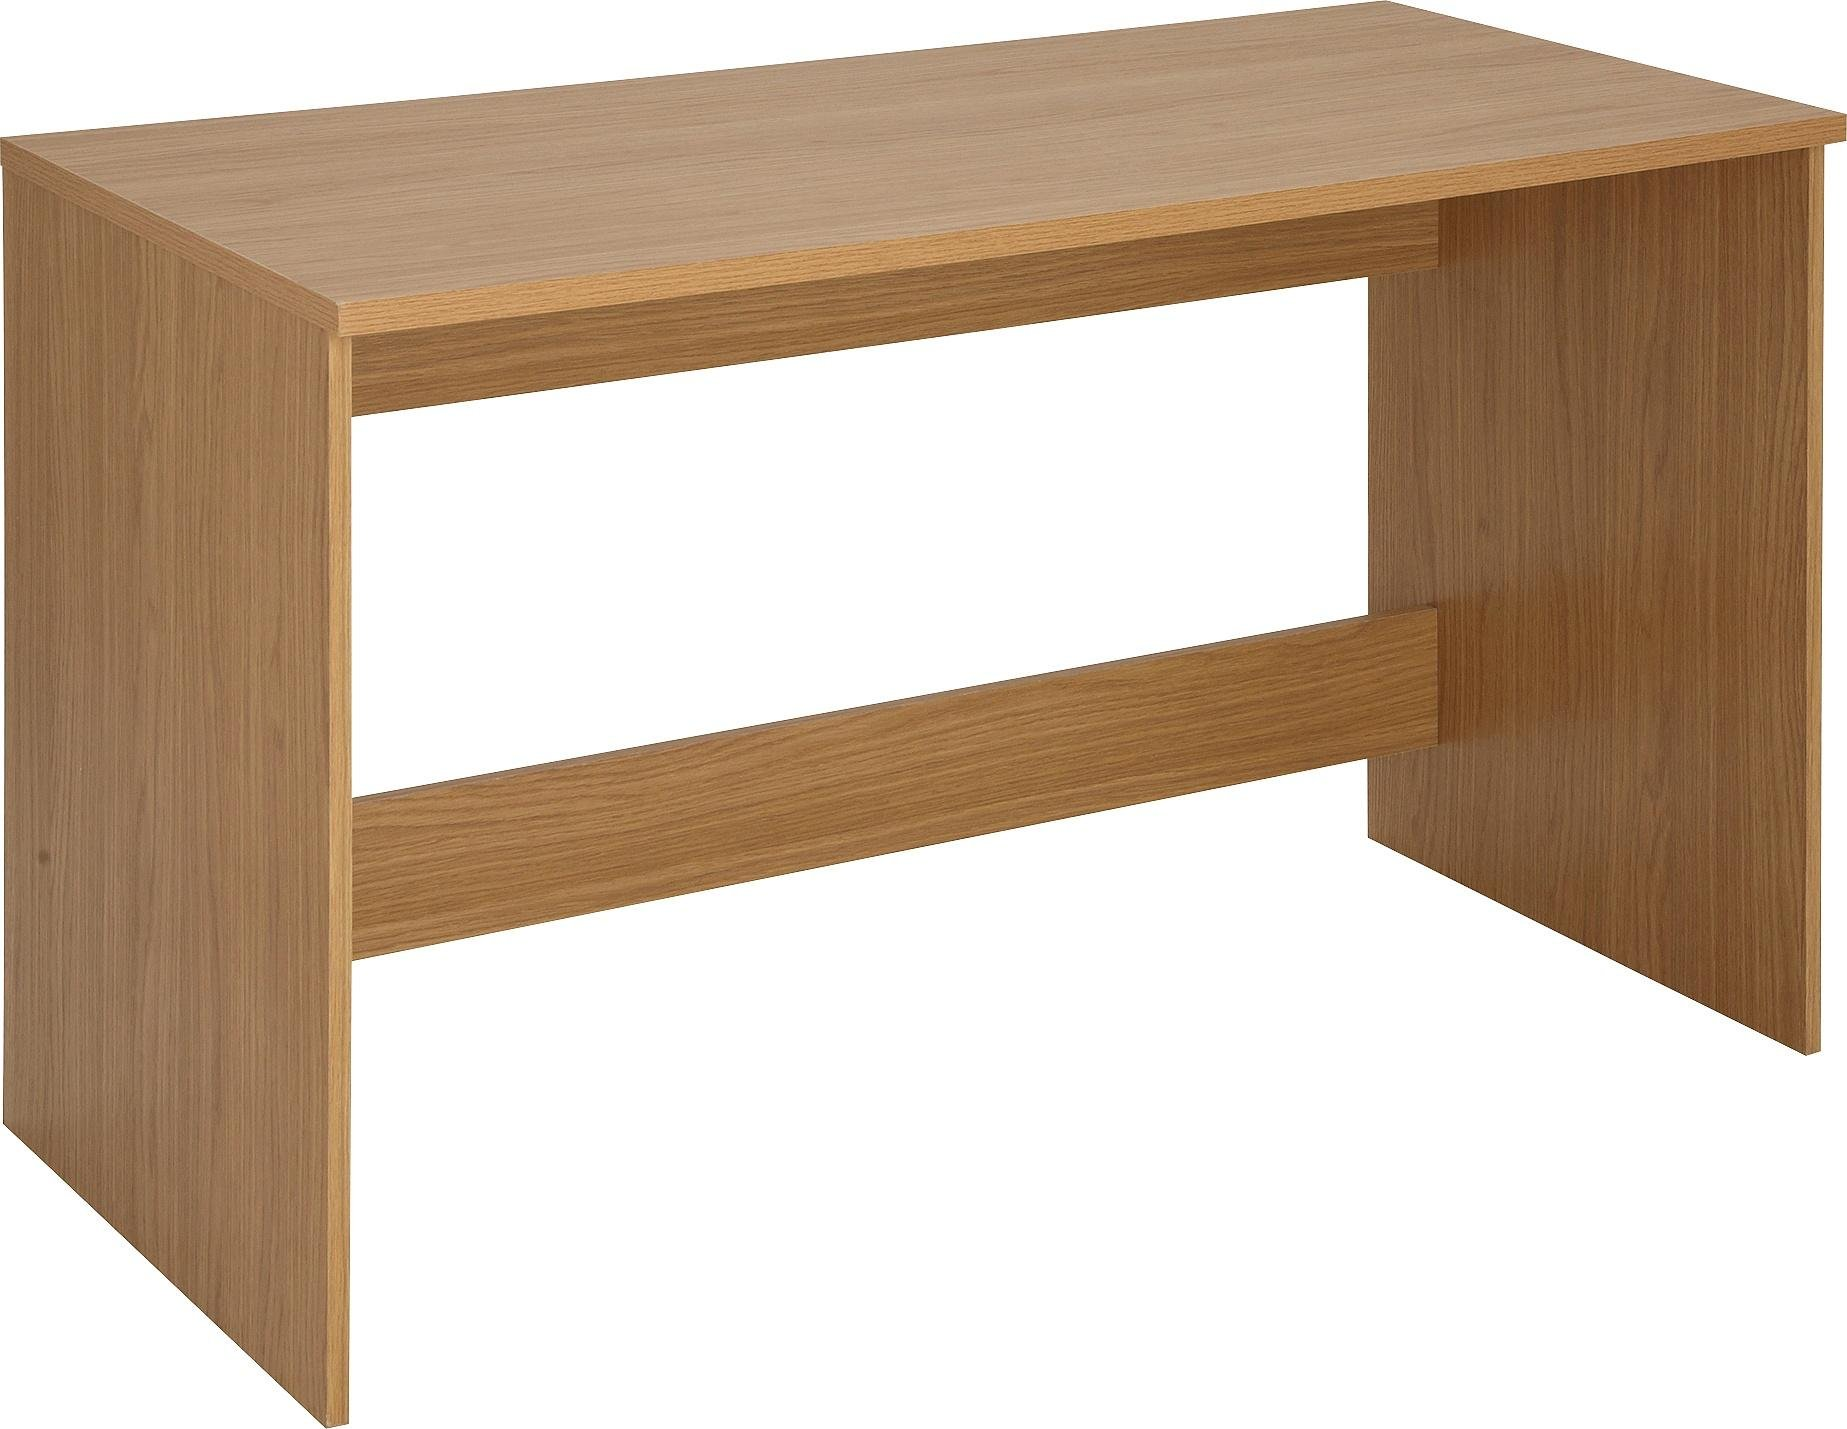 office desk. home walton office desk oak effect t